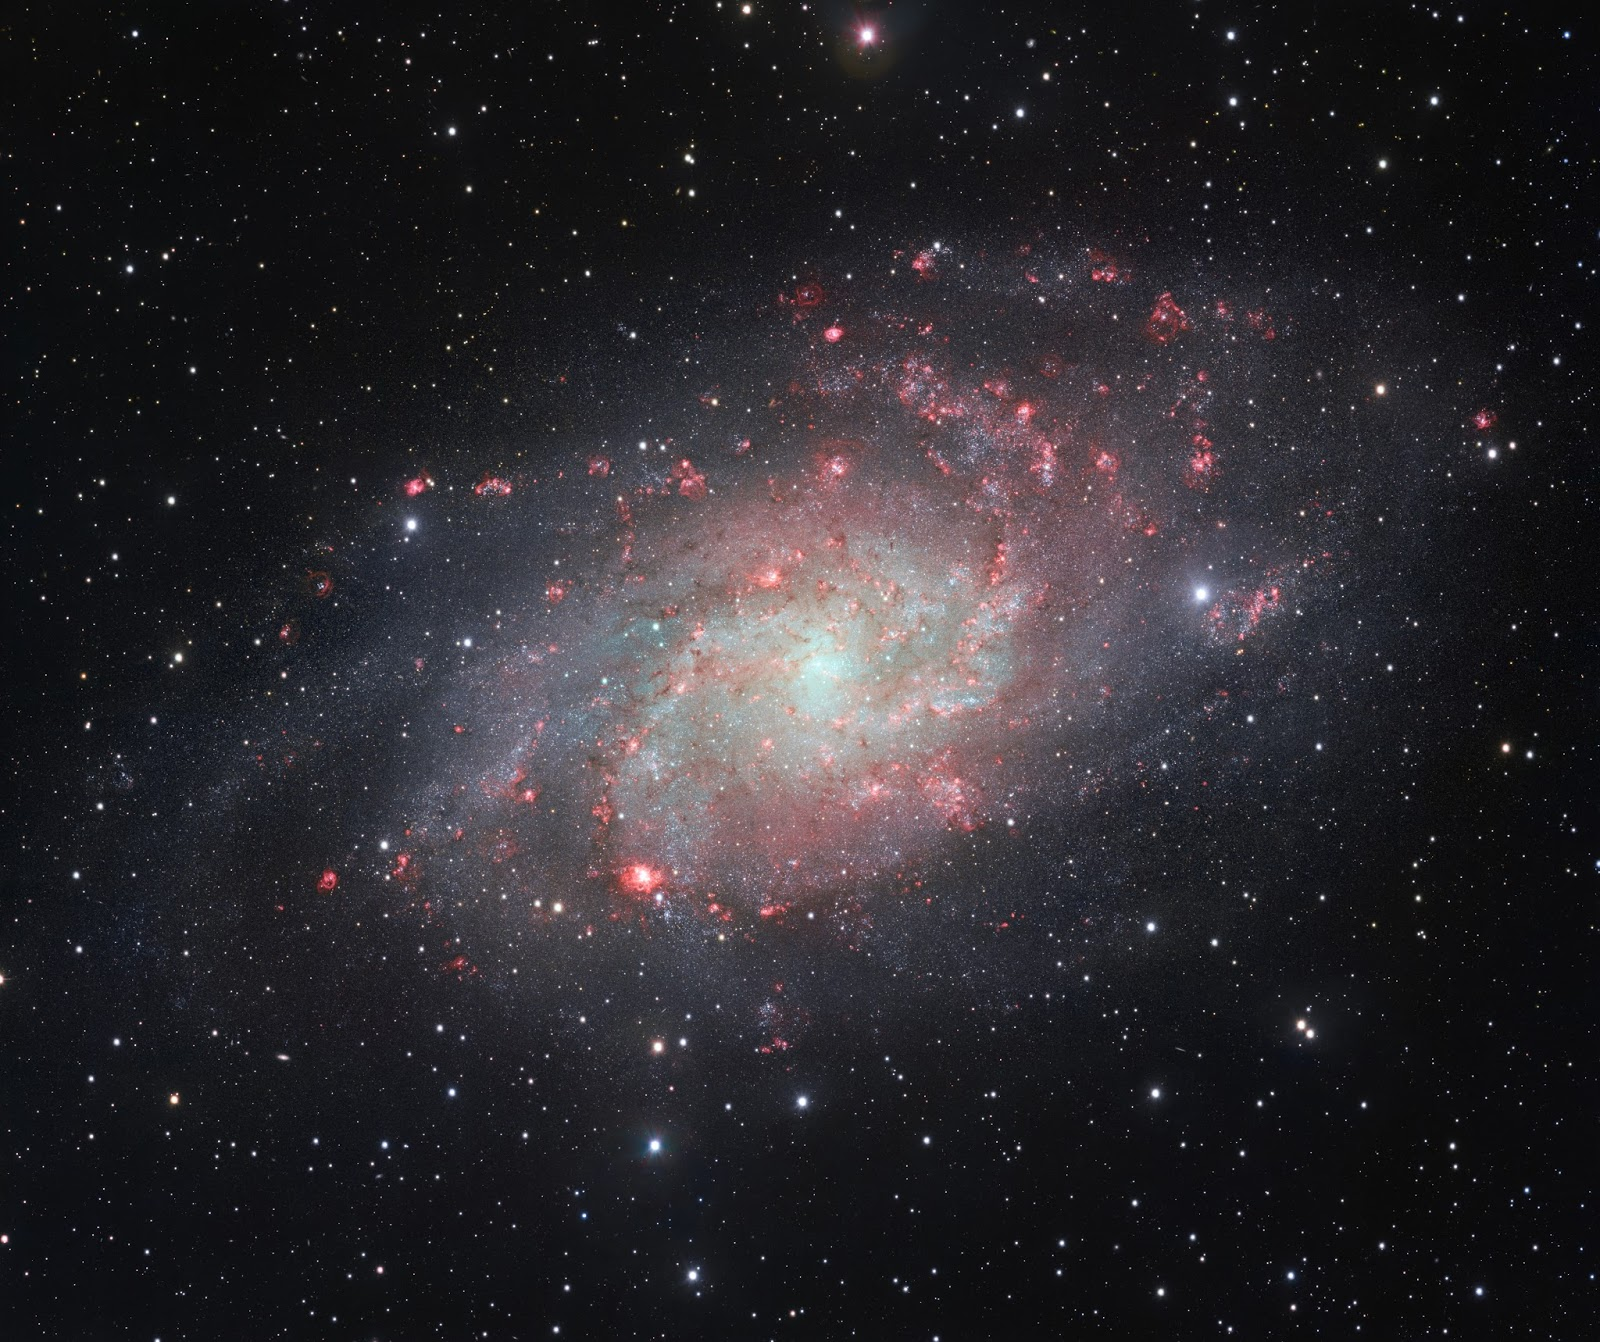 VST snaps a very detailed view of the Triangulum Galaxy VST snaps a very detailed view of the Triangulum Galaxy  The VLT Survey Telescope (VST) at ESO's Paranal Observatory in Chile has captured this beautifully detailed image of the galaxy Messier 33, often called the Triangulum Galaxy. This nearby spiral, the second closest large galaxy to our own galaxy, the Milky Way, is packed with bright star clusters, and clouds of gas and dust. This picture is amongst the most detailed wide-field views of this object ever taken and shows the many glowing red gas clouds in the spiral arms with particular clarity.  Image Credit: ESO Explanation from: http://www.eso.org/public/images/eso1424a/